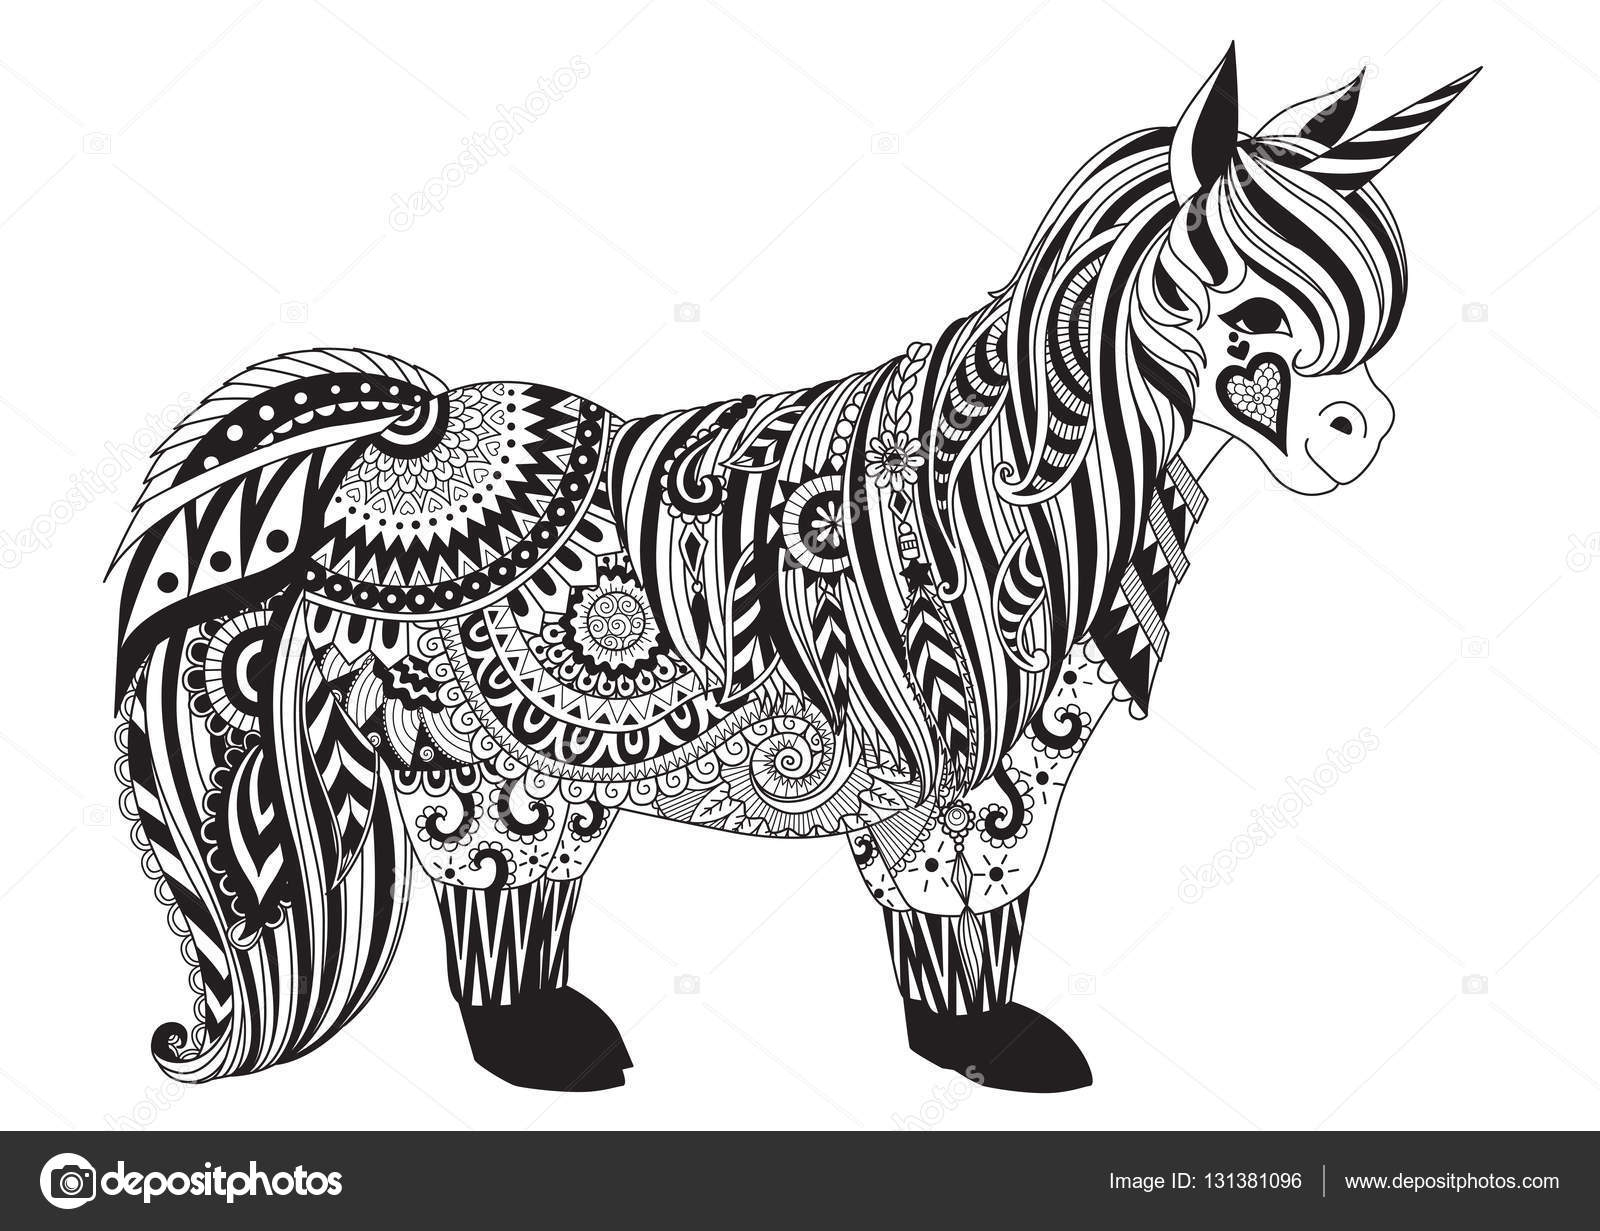 printable unicorn coloring pages - stock illustration zendoodle design of pony for